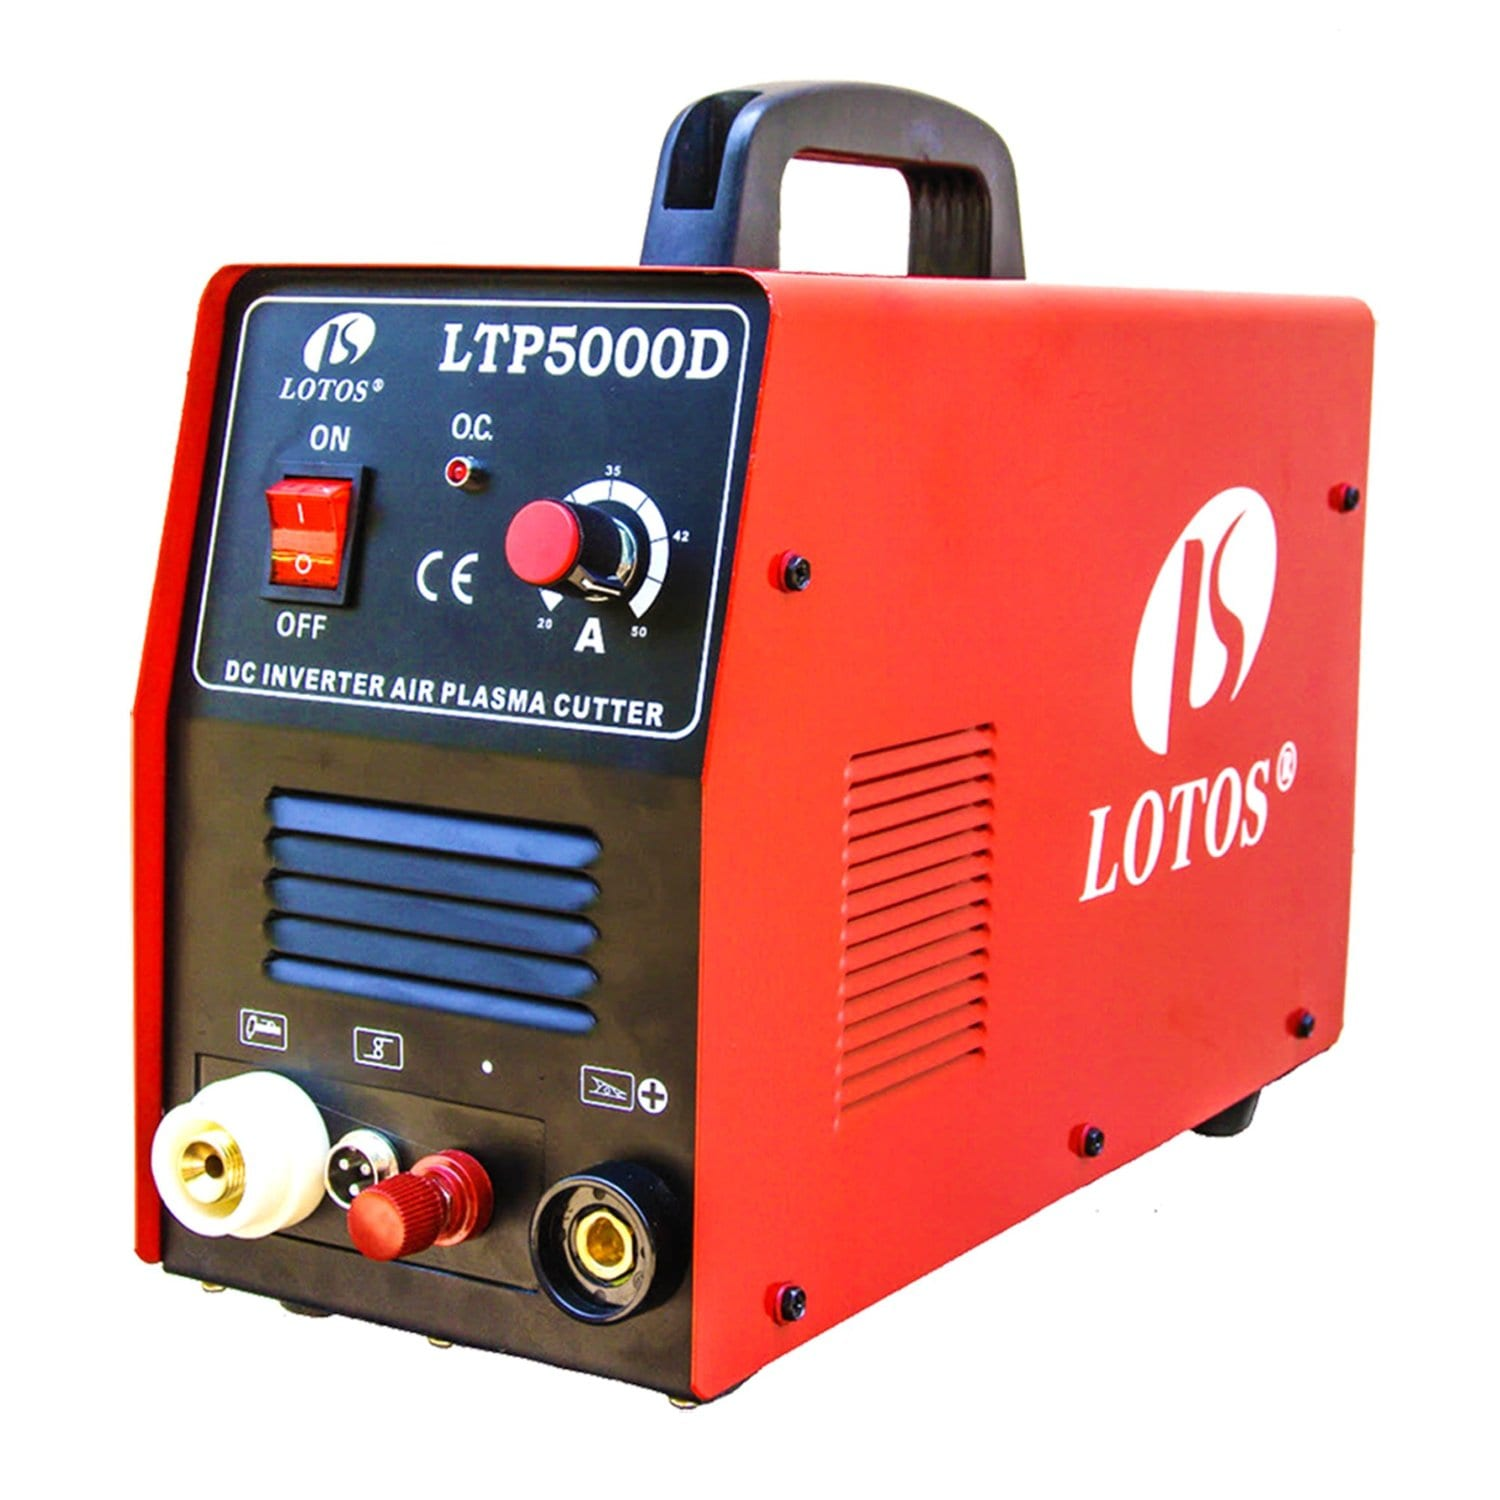 Lotos LTP5000D 50Amp Non-Touch Pilot Arc Plasma Cutter, 1-2 Inch Clean Cut Review